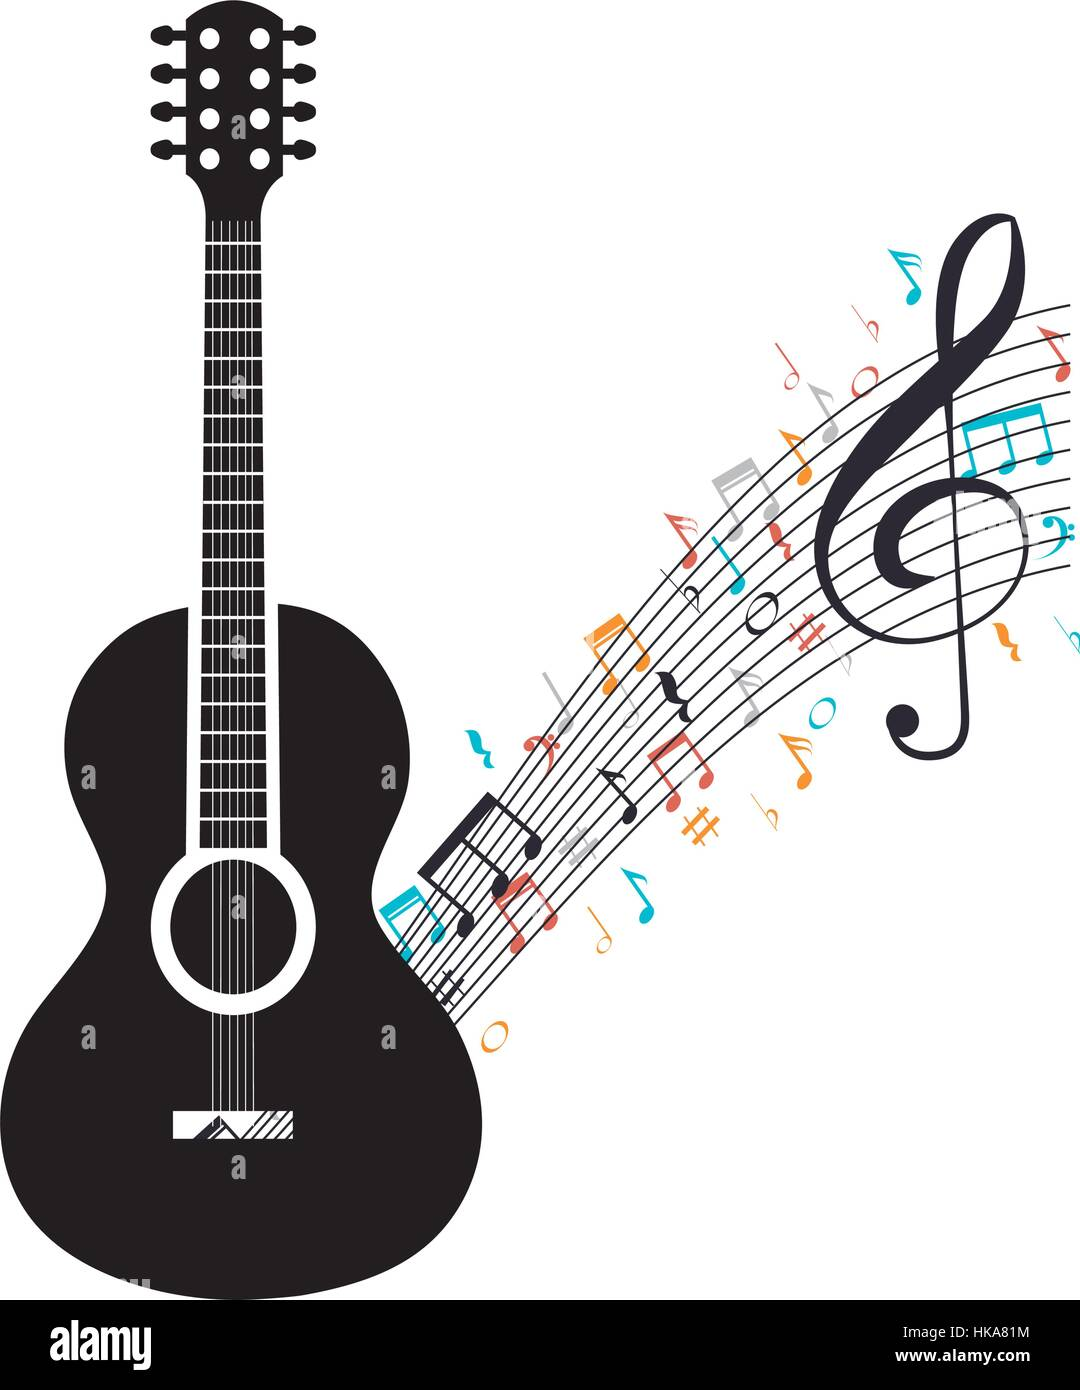 Acoustic Guitar With Musical Notes Vector Illustration Design Stock